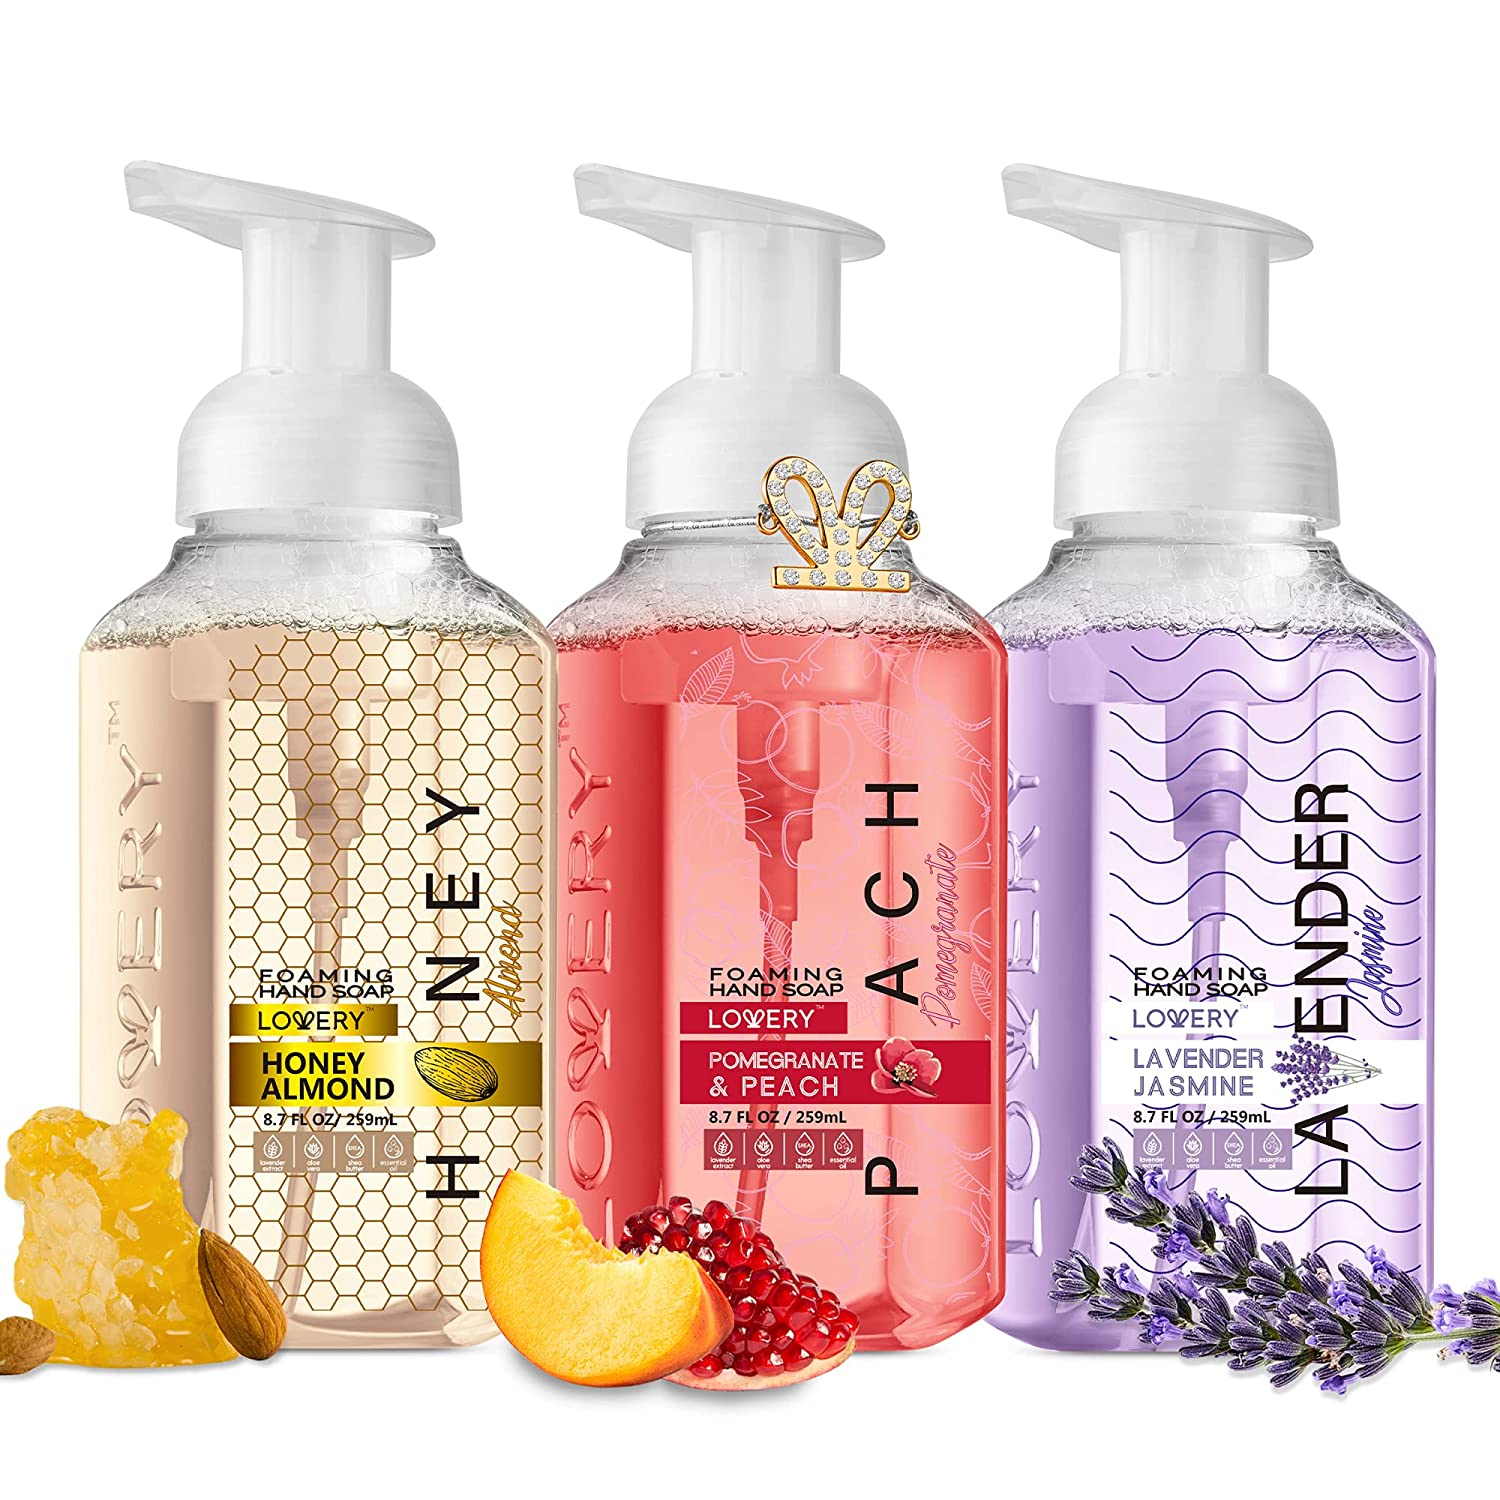 Lovery Foaming Hand Soap - Pack of 3 - Moisturizing Hand Soap with Aloe Vera & Essential Oils - Alcohol-Free Hand Wash in Honey Almond, Pomegranate Peach, Lavender Jasmine Scent - Scented Hand Wash for Kitchen or Bathroom - Free Swarovski Bracelet